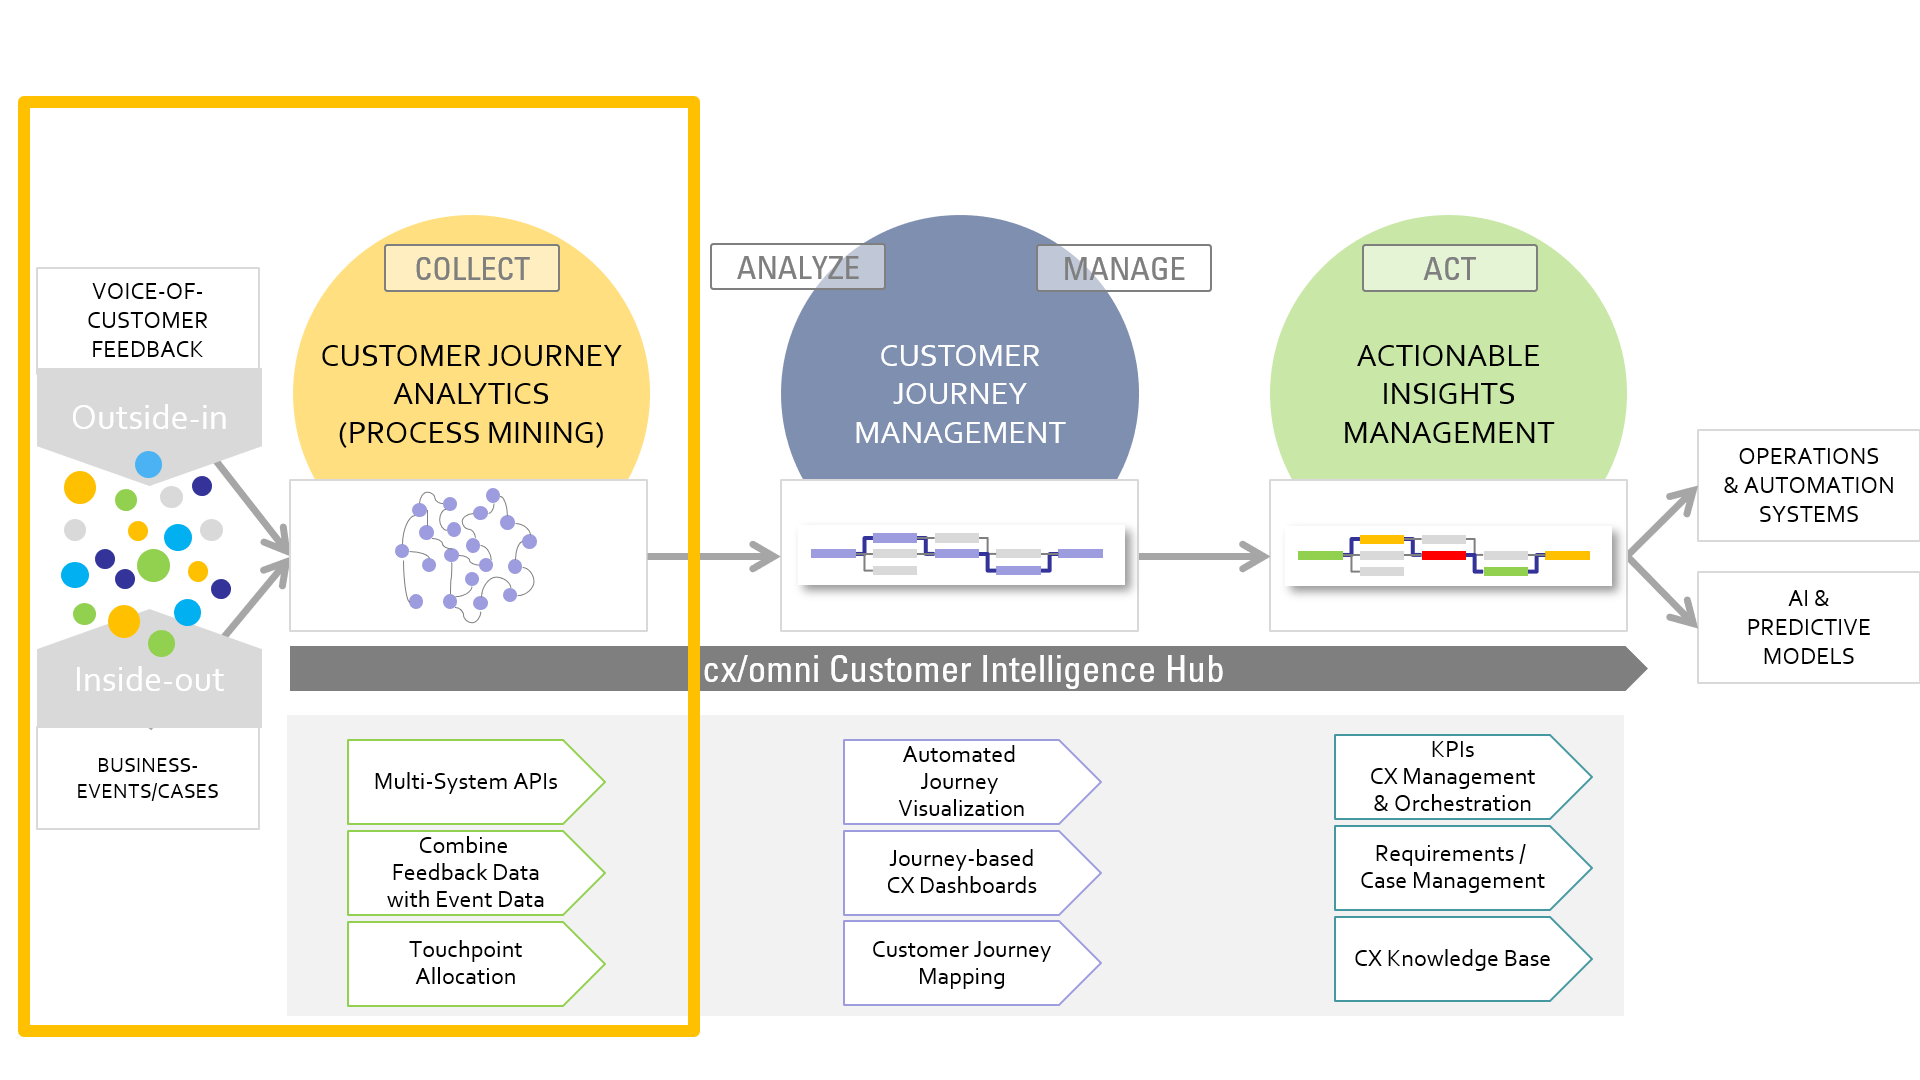 Customer Journey Analytics